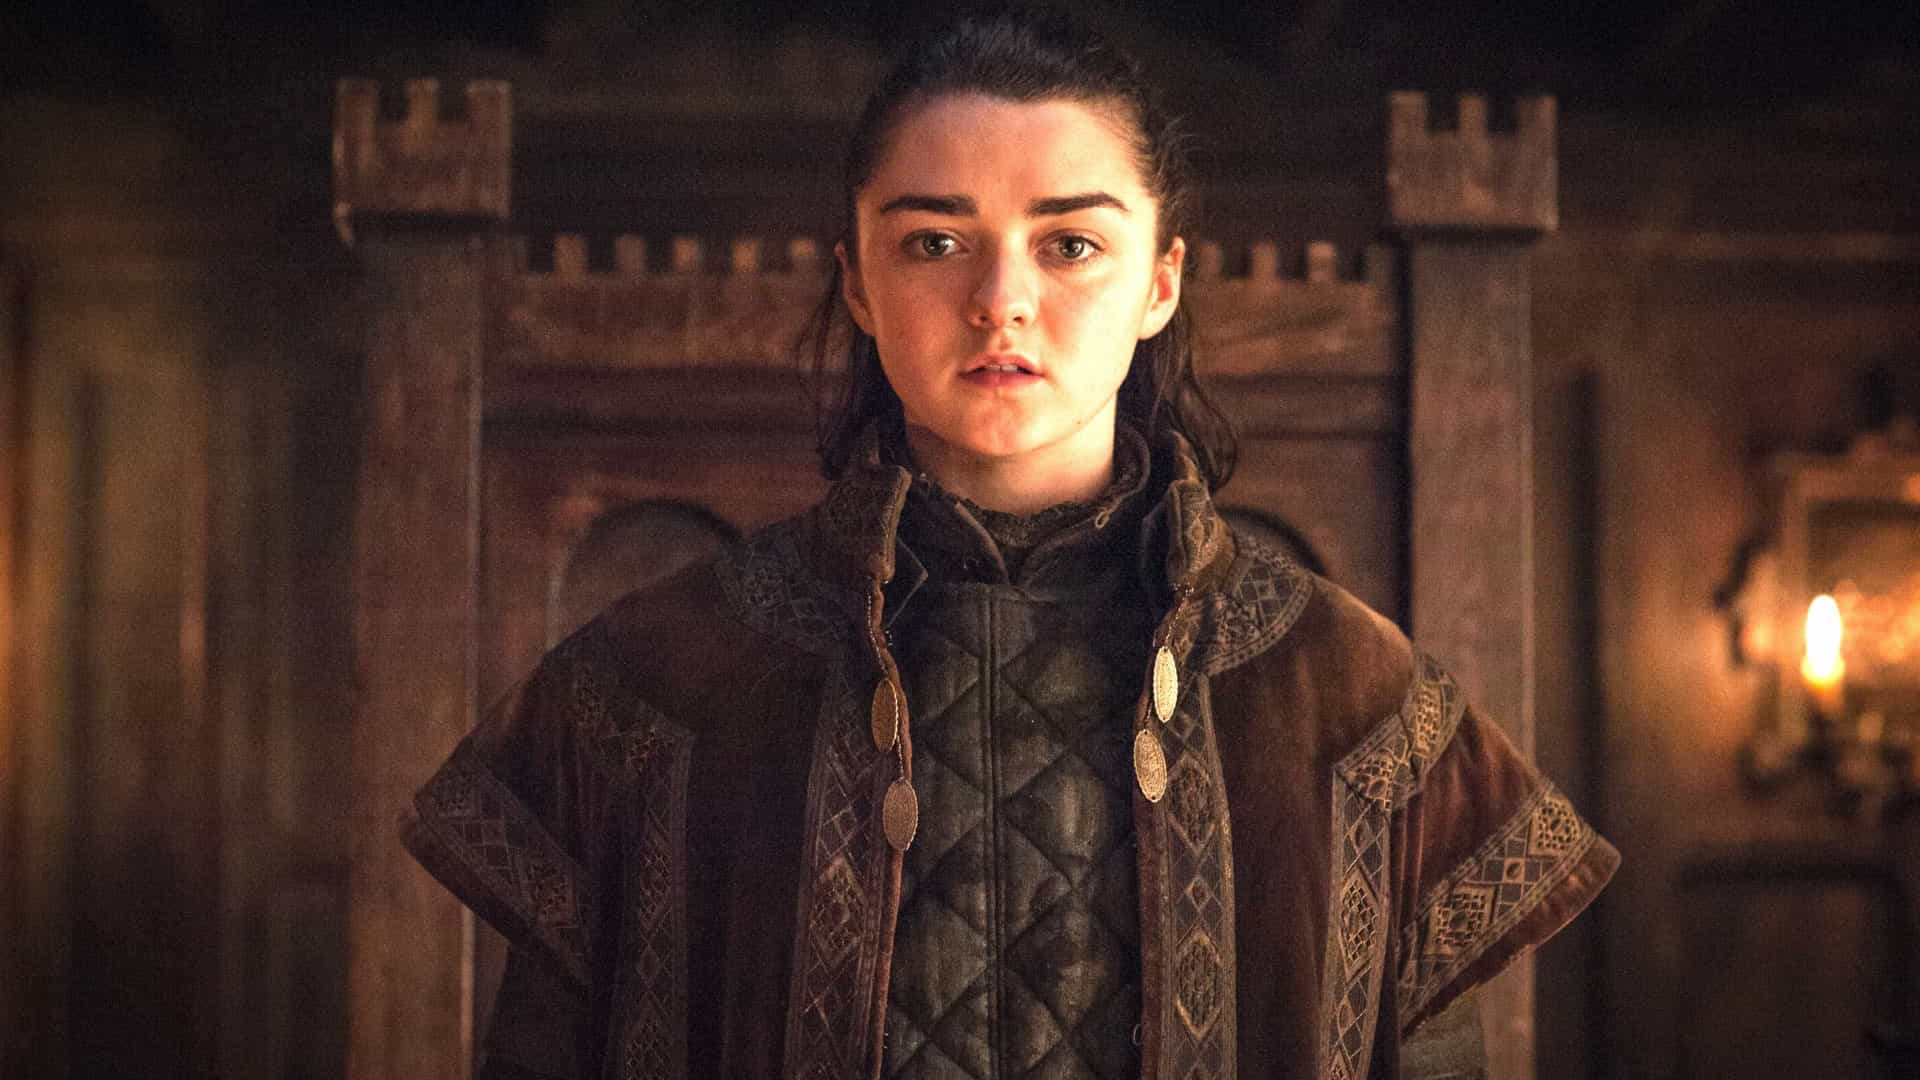 Maisie Williams será madrinha de casamento de Sophie Turner com Joe Jonas